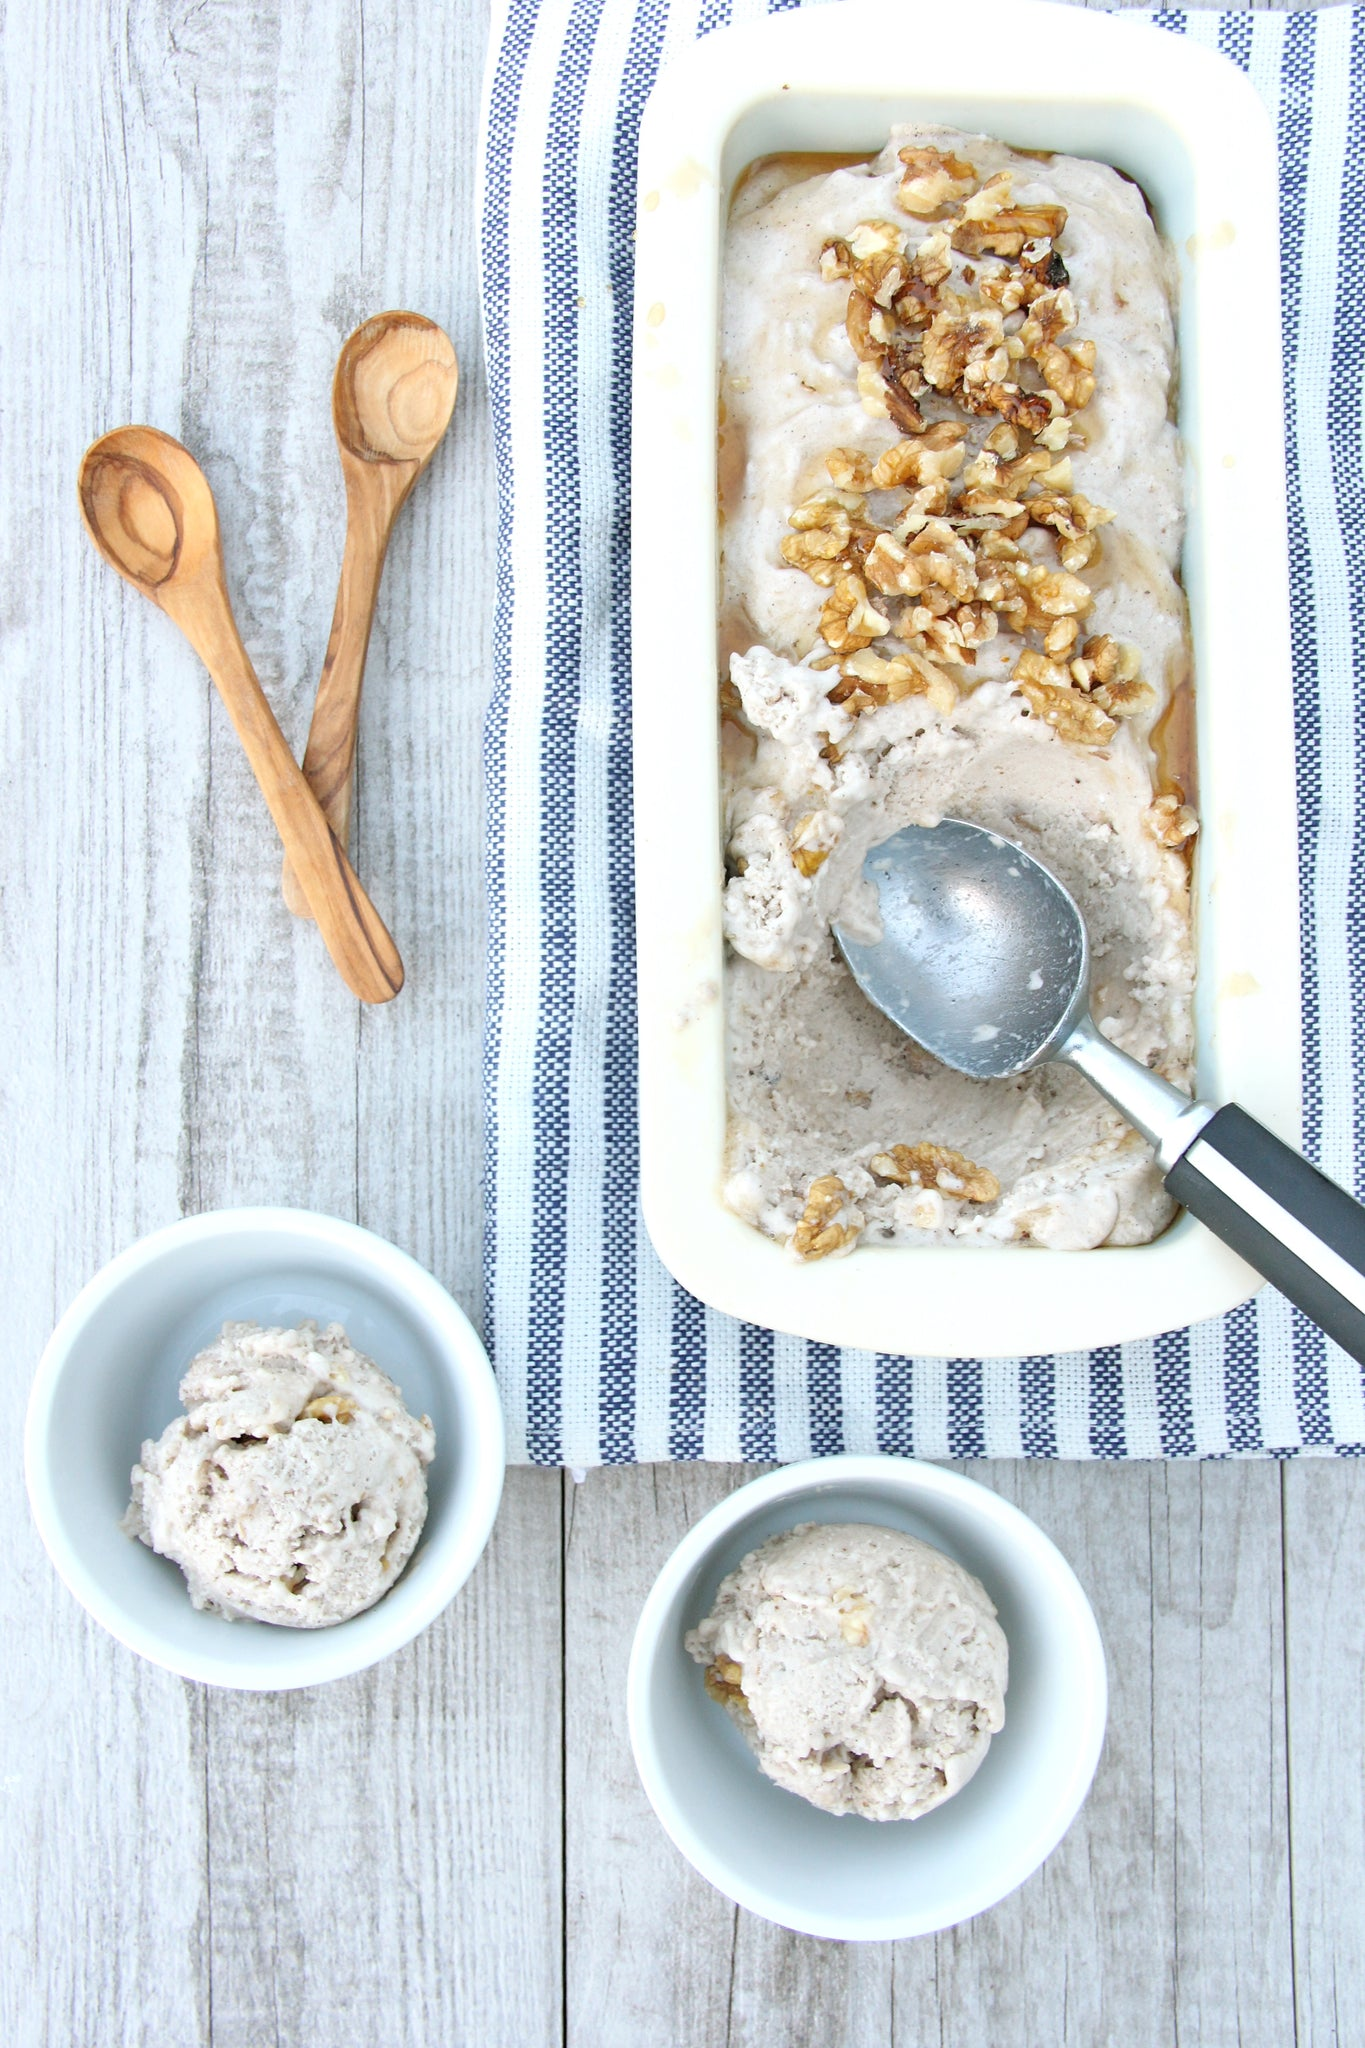 Maple Walnut Ice Cream #healthy #vegan #recipe #icecream #dessert #dairyfree #sugarfree #glutenfree #plantbased #begoodorganics